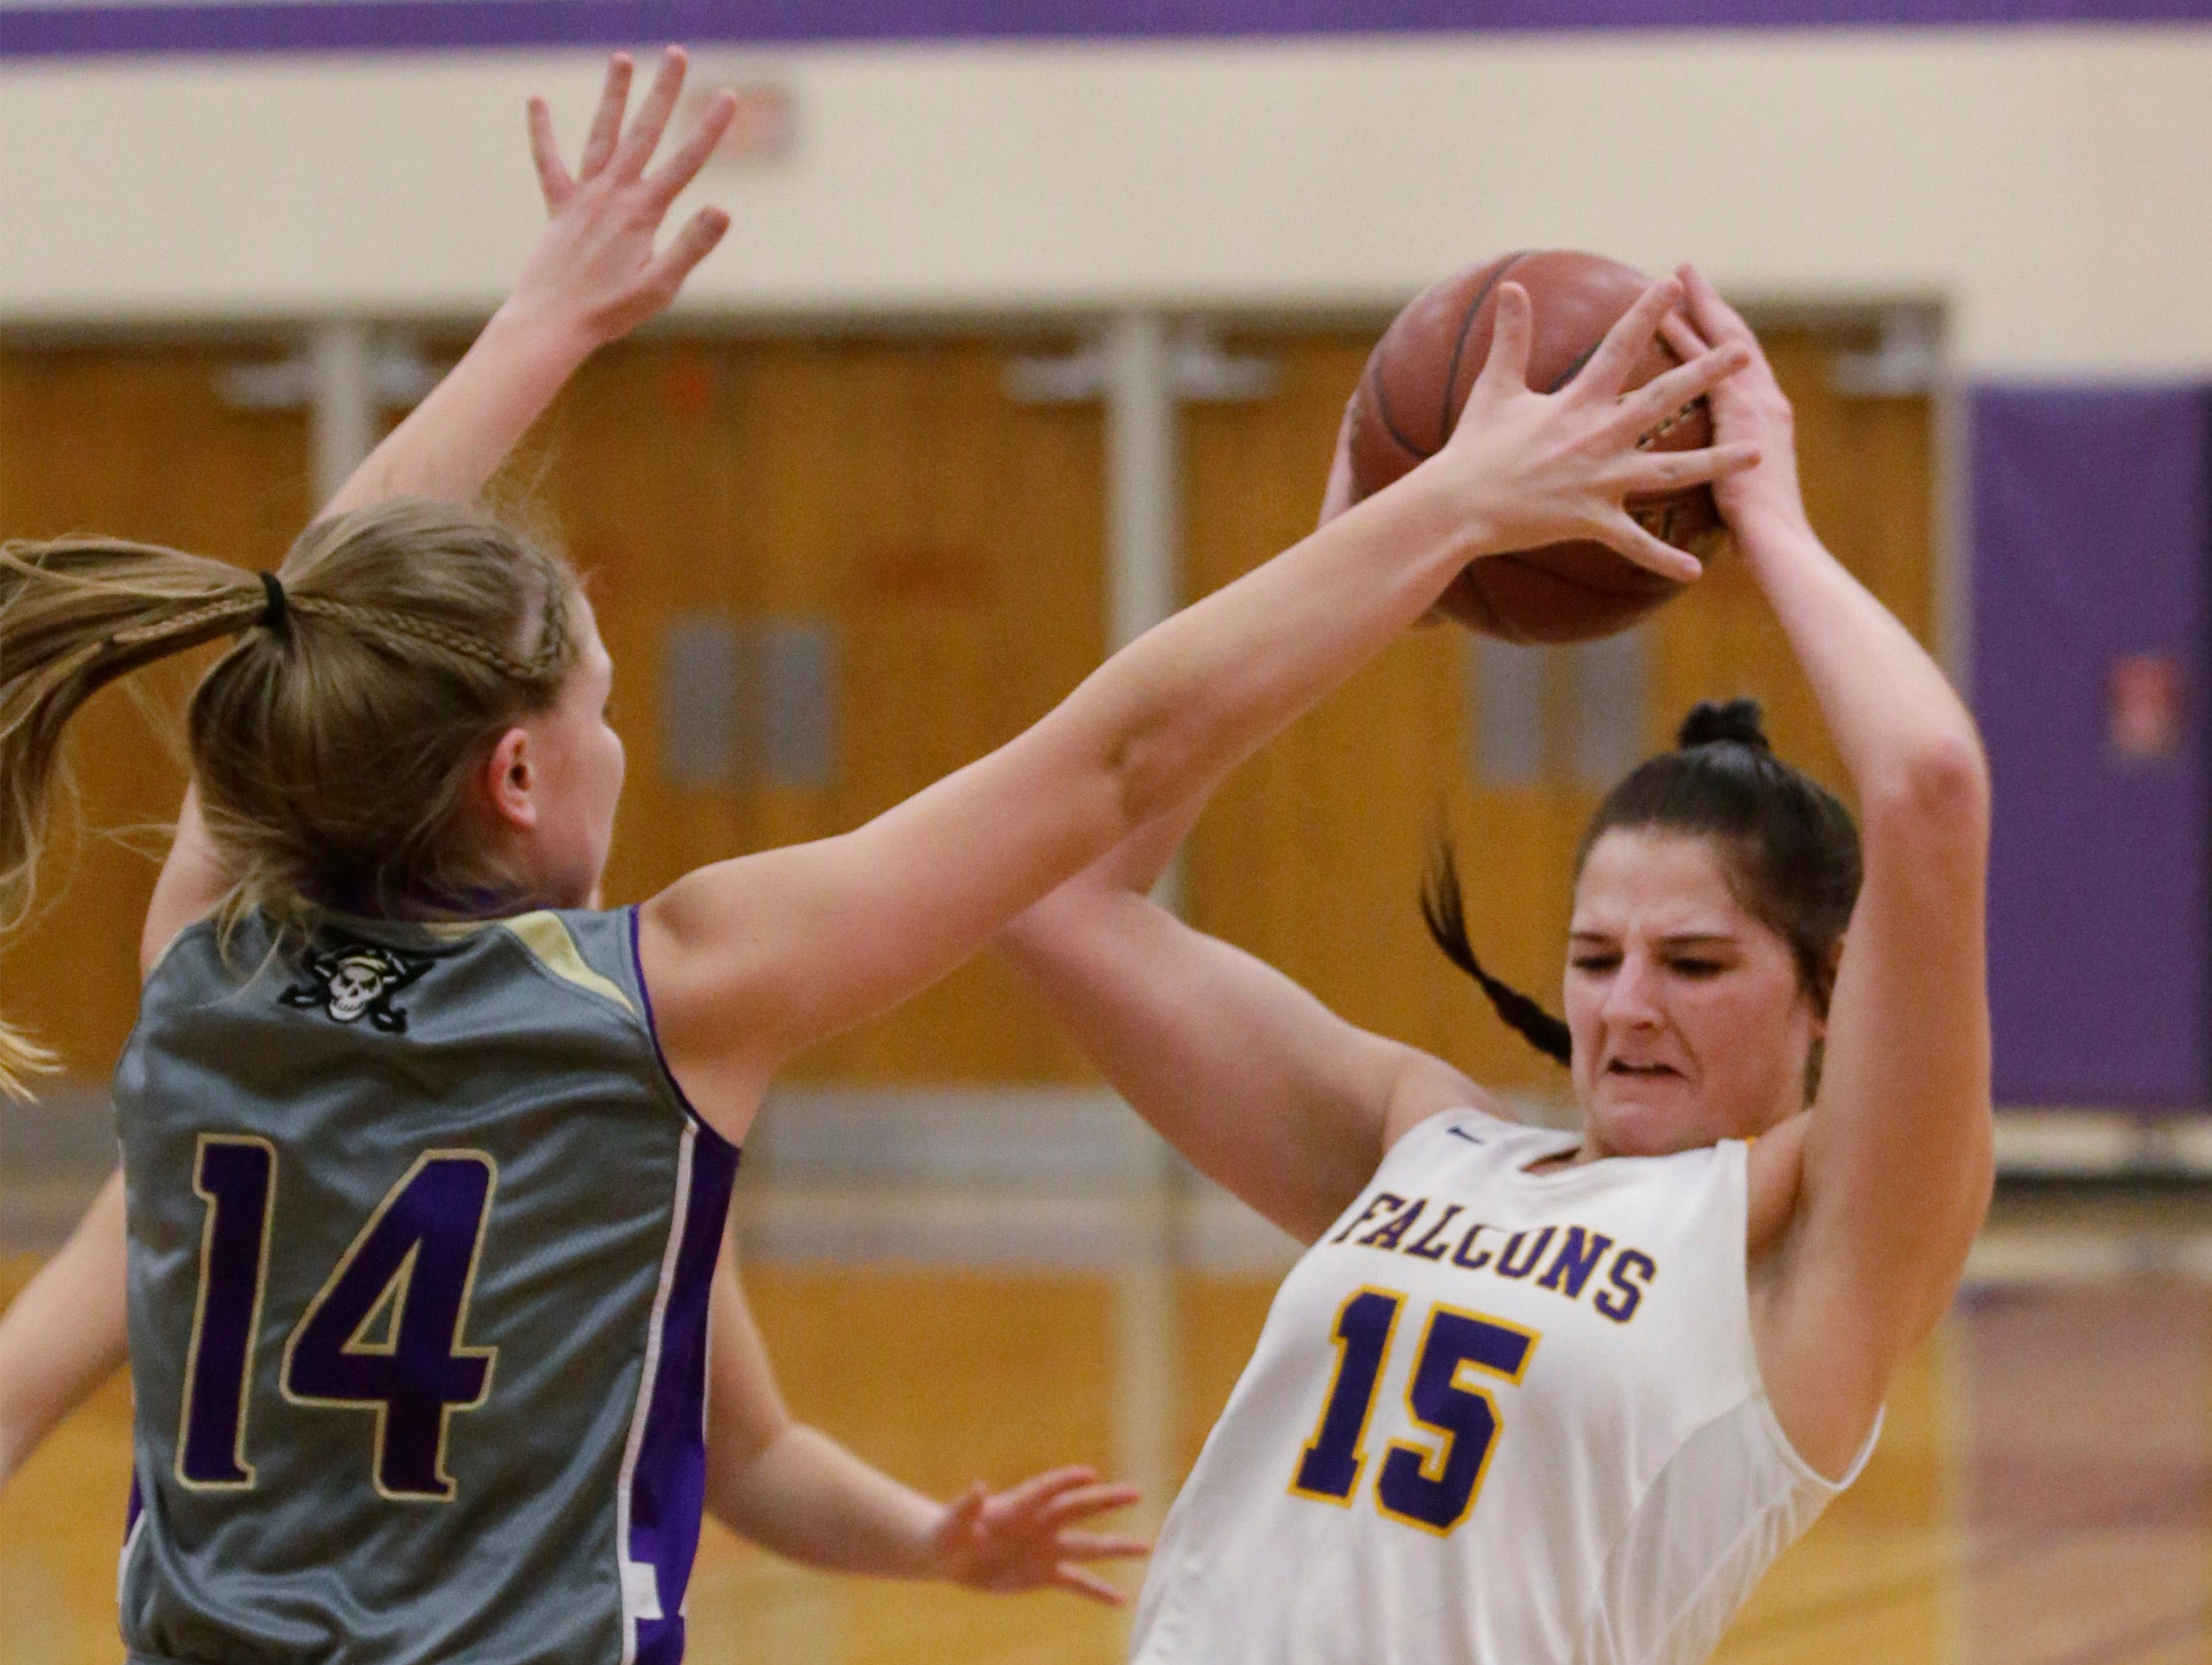 Sheboygan Falls' Myja Durn (15) keeps the ball away from Two Rivers' Andrea Hendrickson (14), Thursday, February 14, 2019, in Sheboygan Falls, Wis.